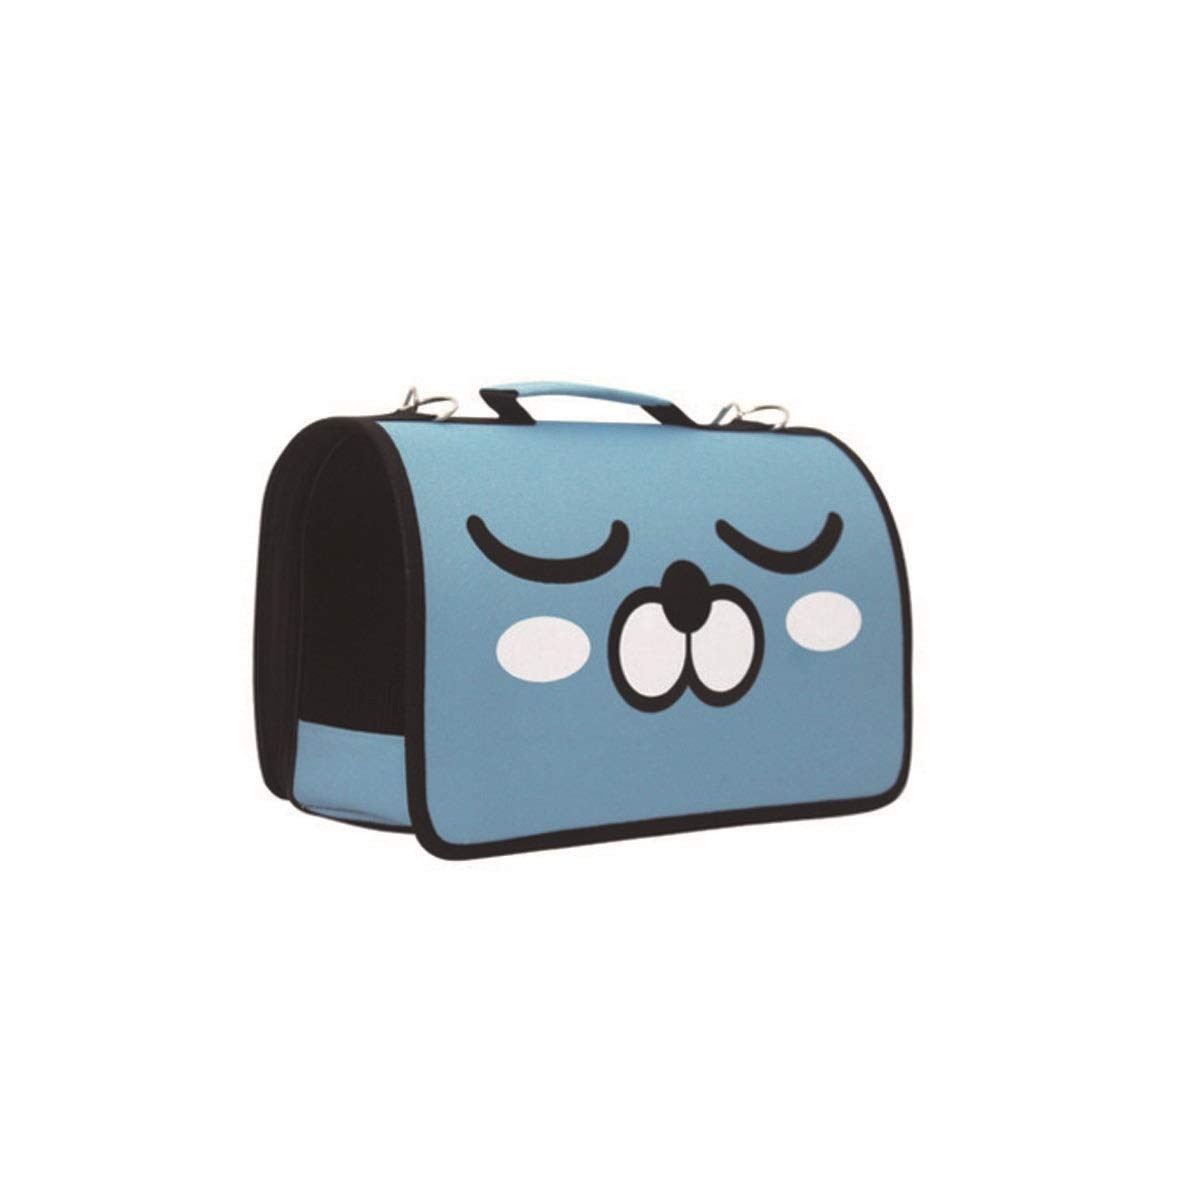 bluee L bluee L Pet Carrier, Cat Out Carrier, Carrying Bag, Red, Black, bluee, Light bluee, Green (color   bluee, Size   L)